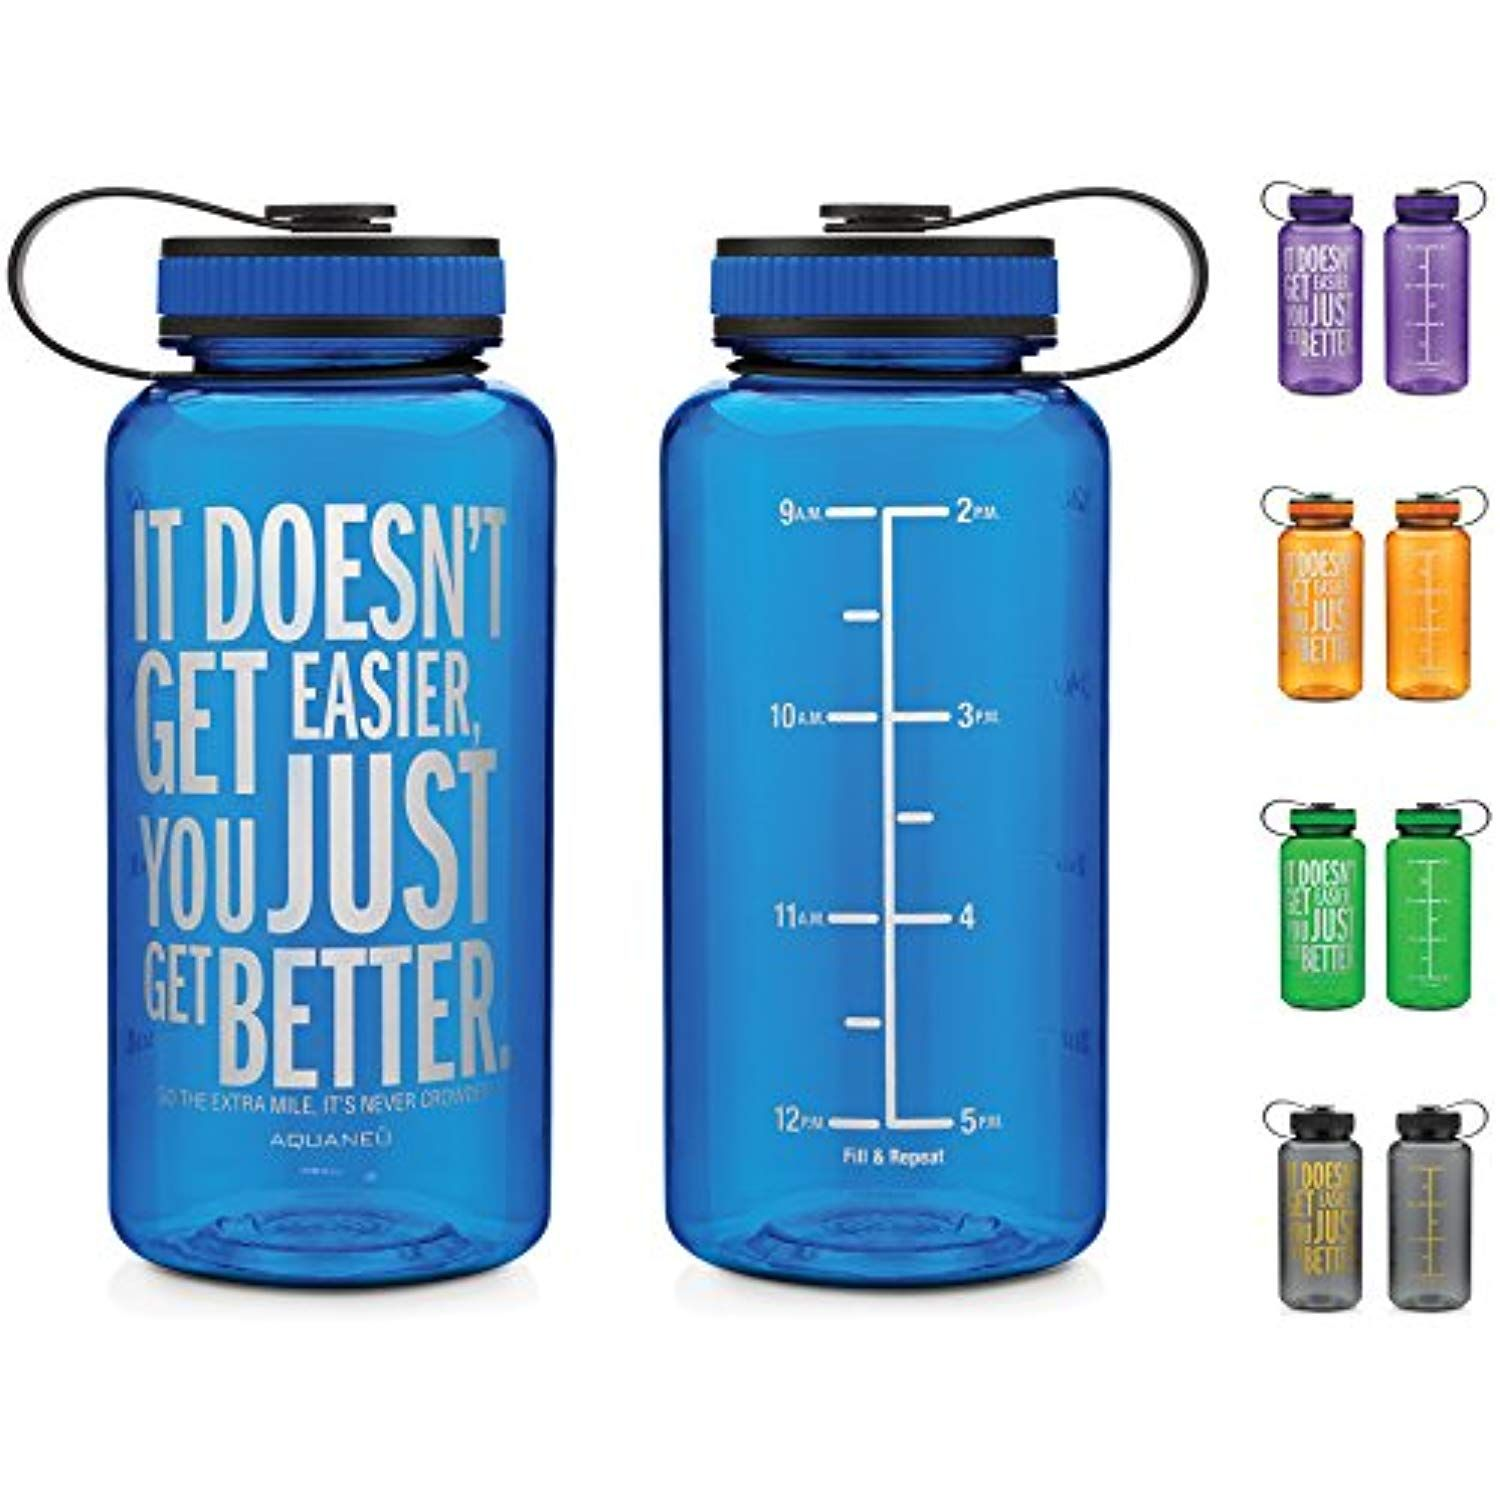 0abab4451c AQUANEÜ 34oz Inspirational Fitness Workout Sports Water Bottle with Time  Marker | Measurements | Goal Marked Times For Measuring Your H2O Intake, ...